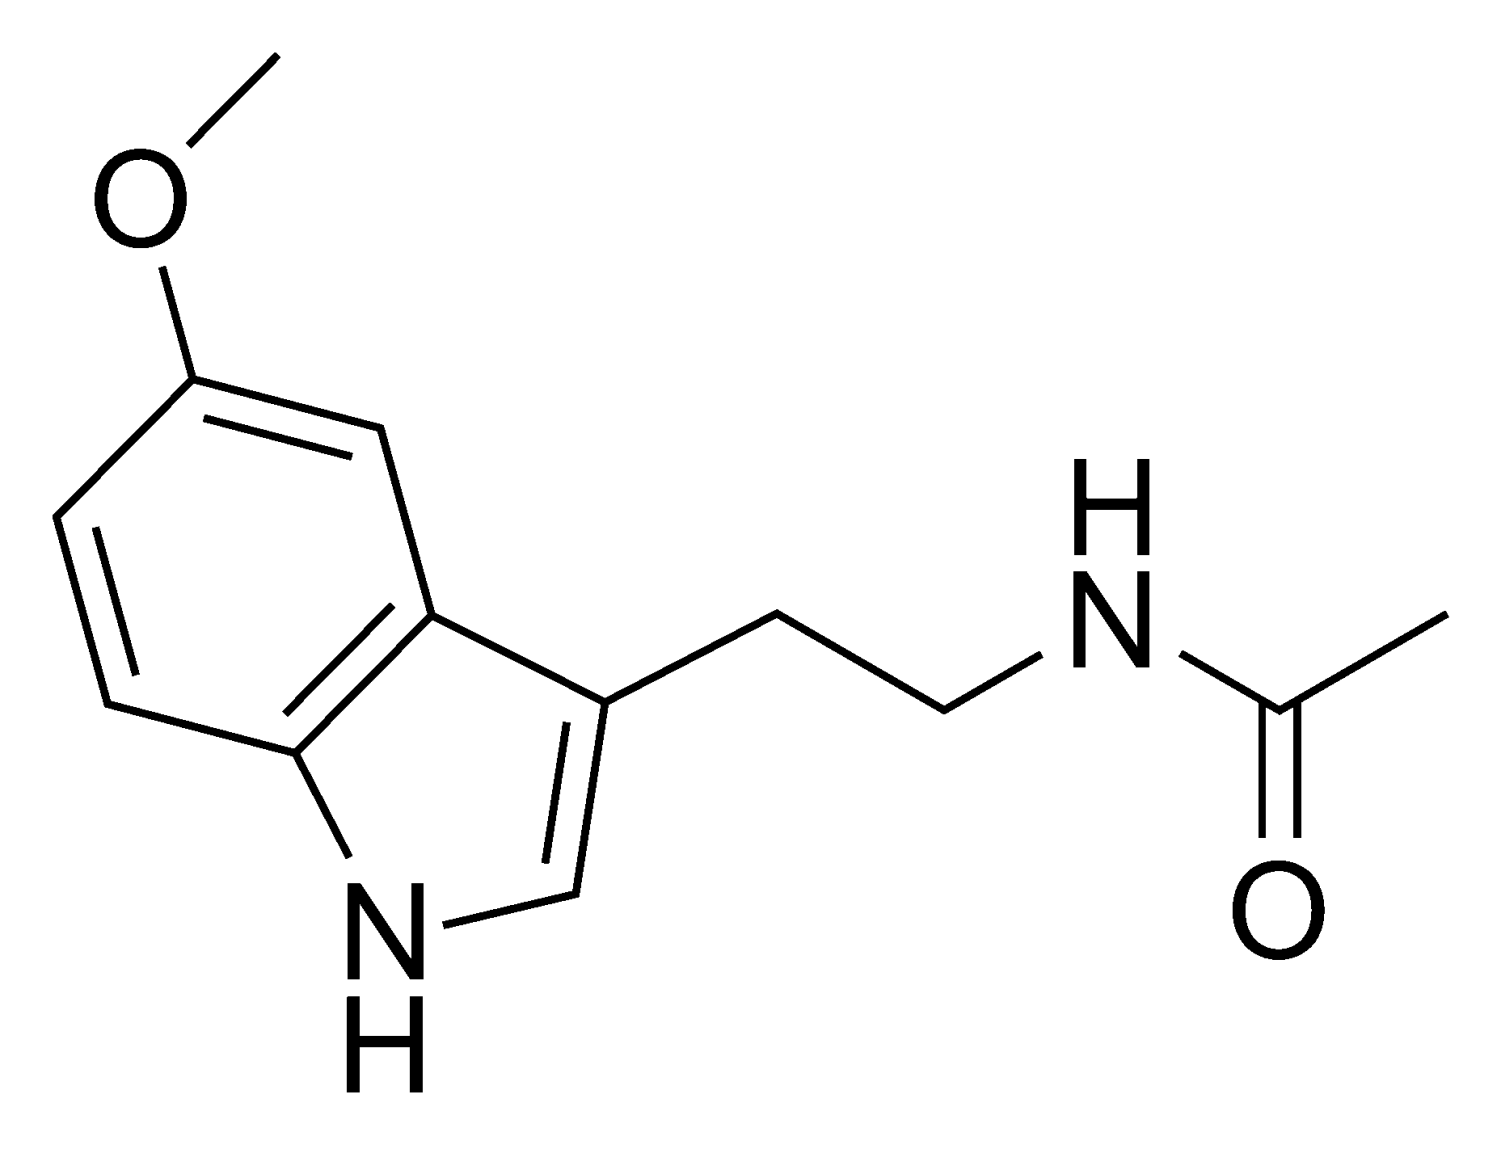 This is the structure of melatonin, the chemical released in order to make someone sleep.